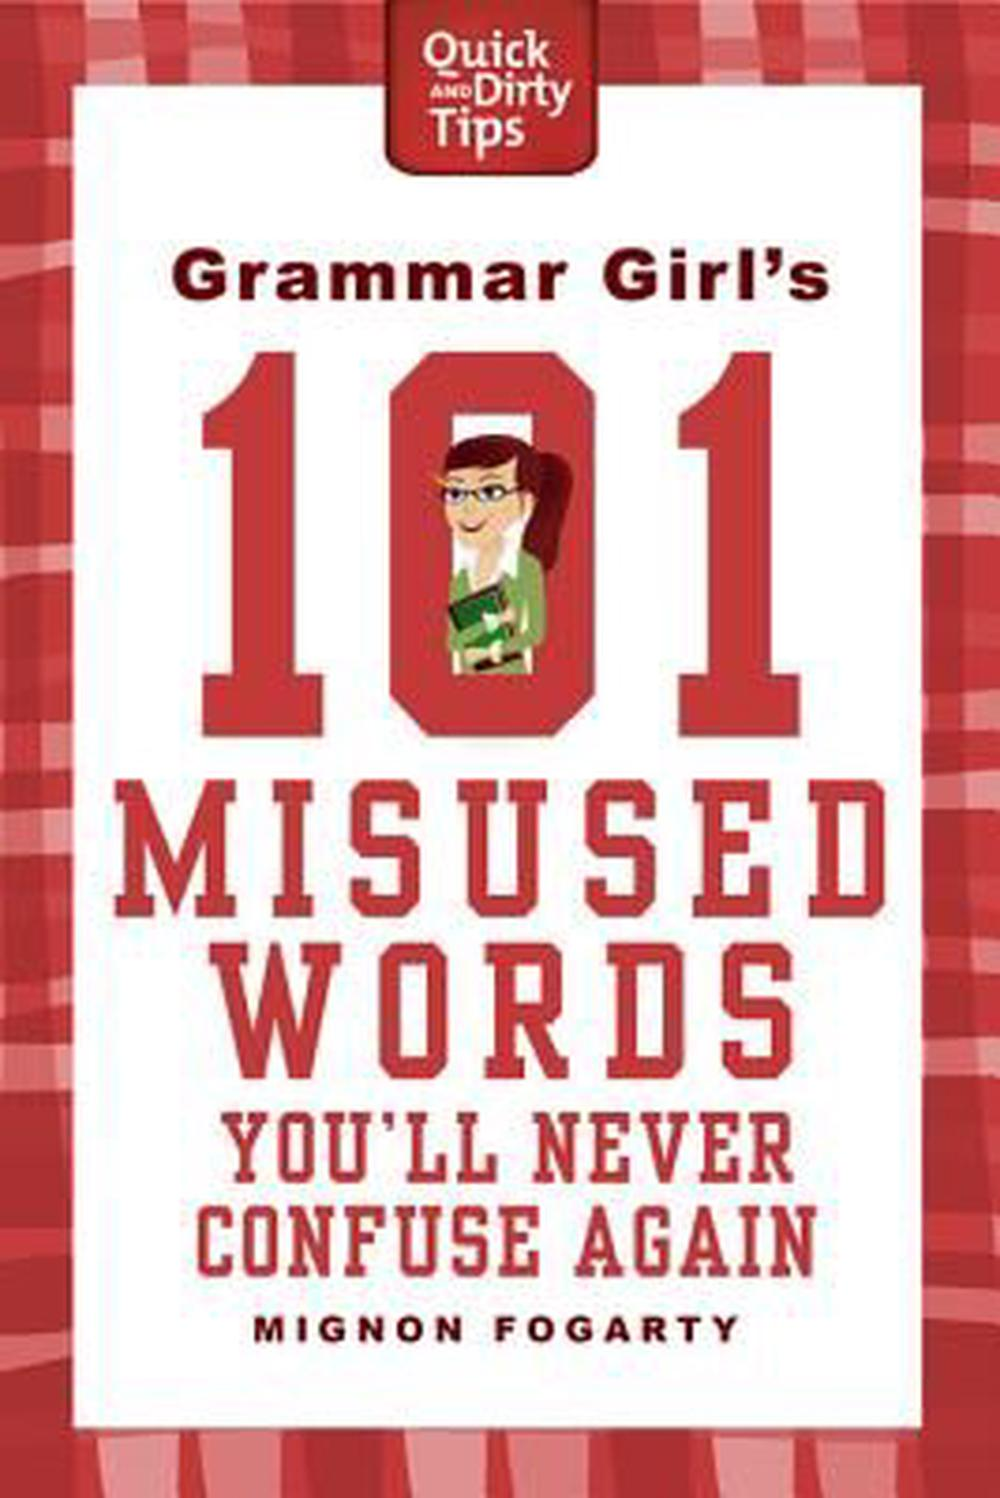 Grammar Girl's 101 Misused Words You'll Never Confuse Again by Mignon Fogarty, ISBN: 9780312573379